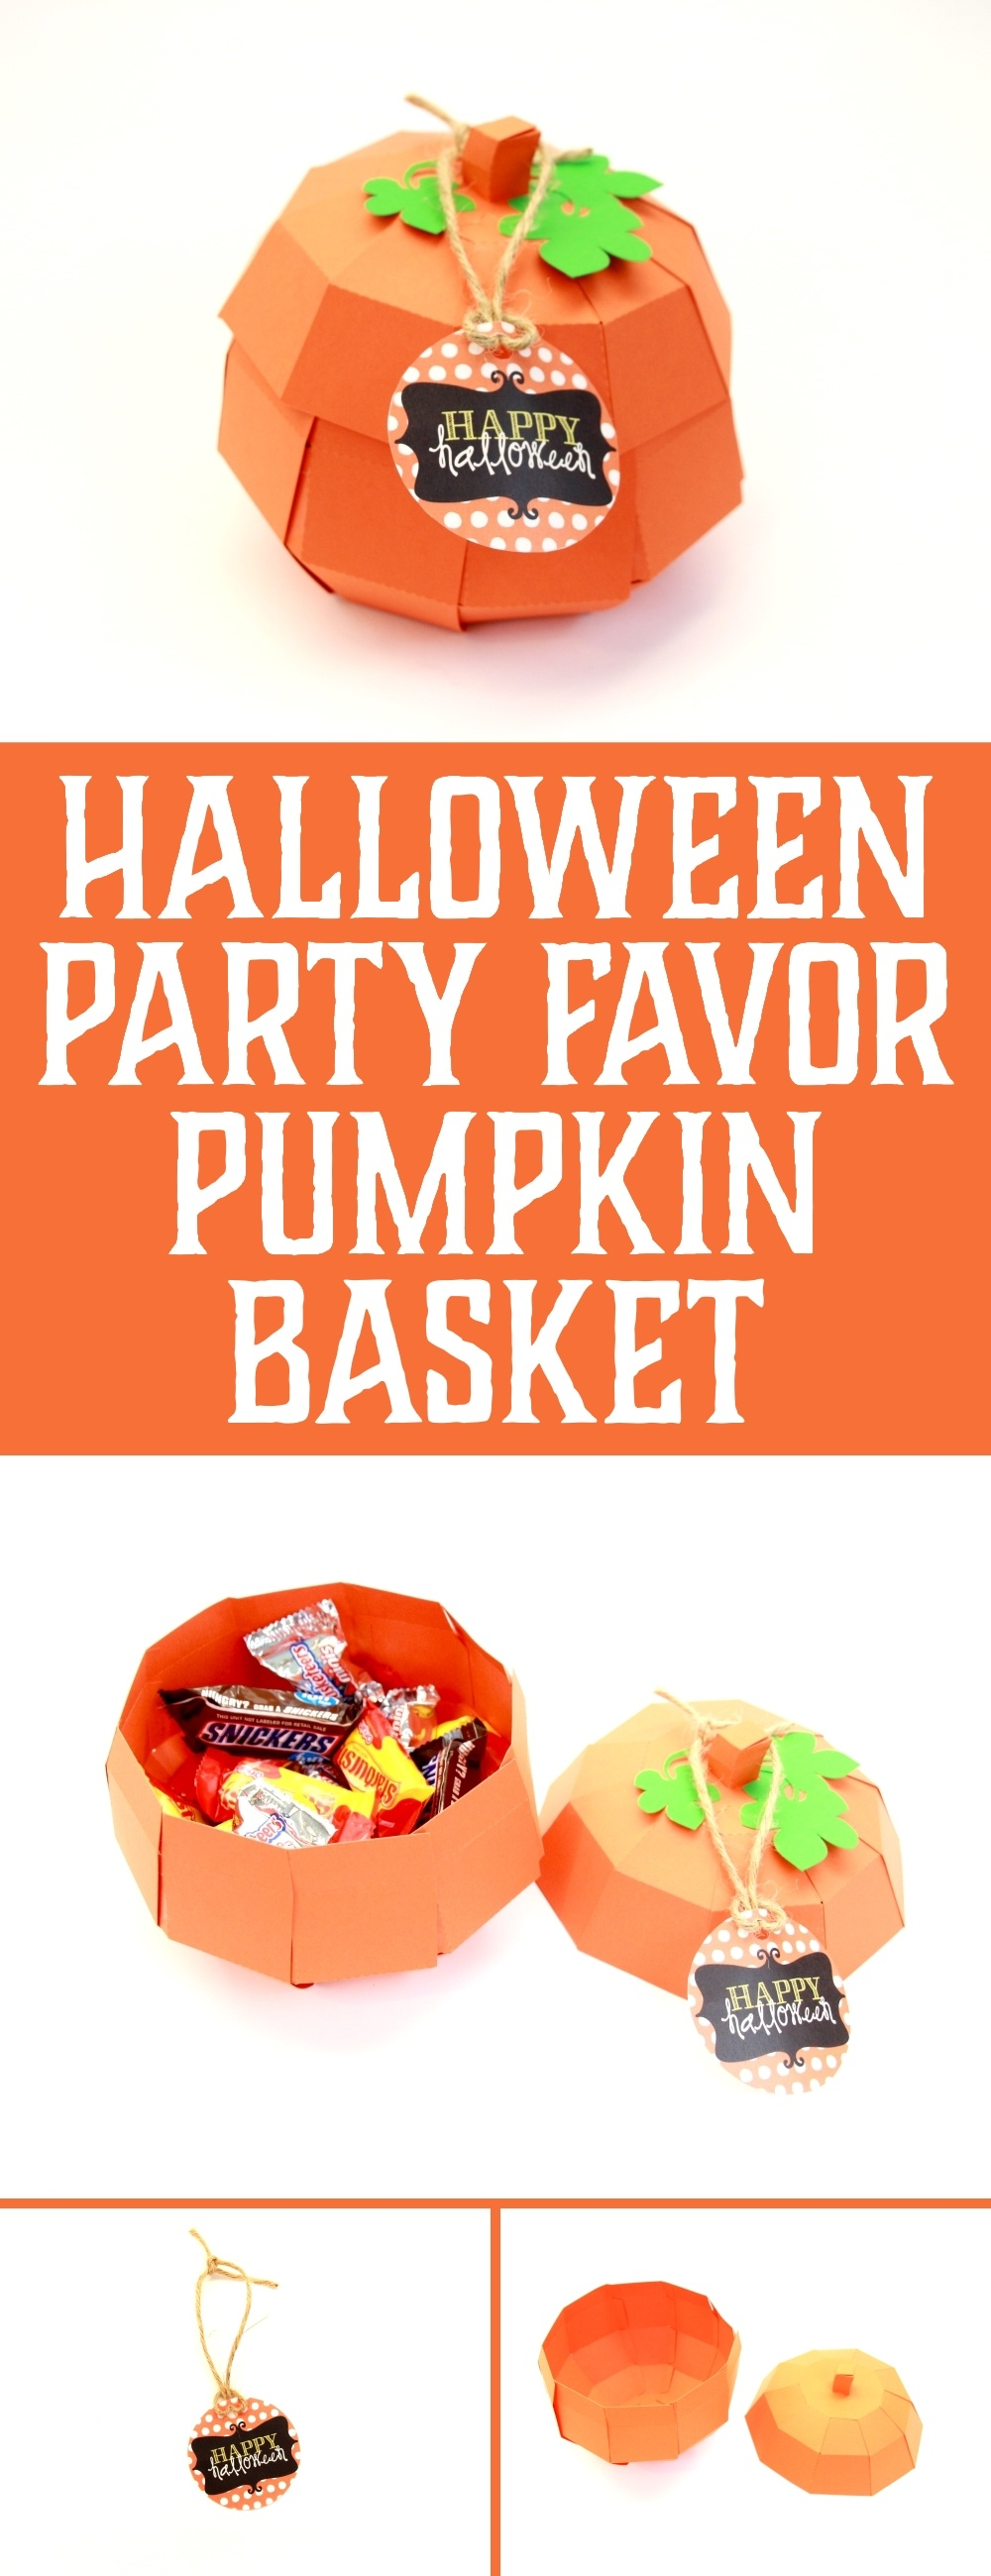 Learn how to make this adorable Halloween Party Favor Pumpkin Basket by Polka Dotted Blue Jay on Love the Day